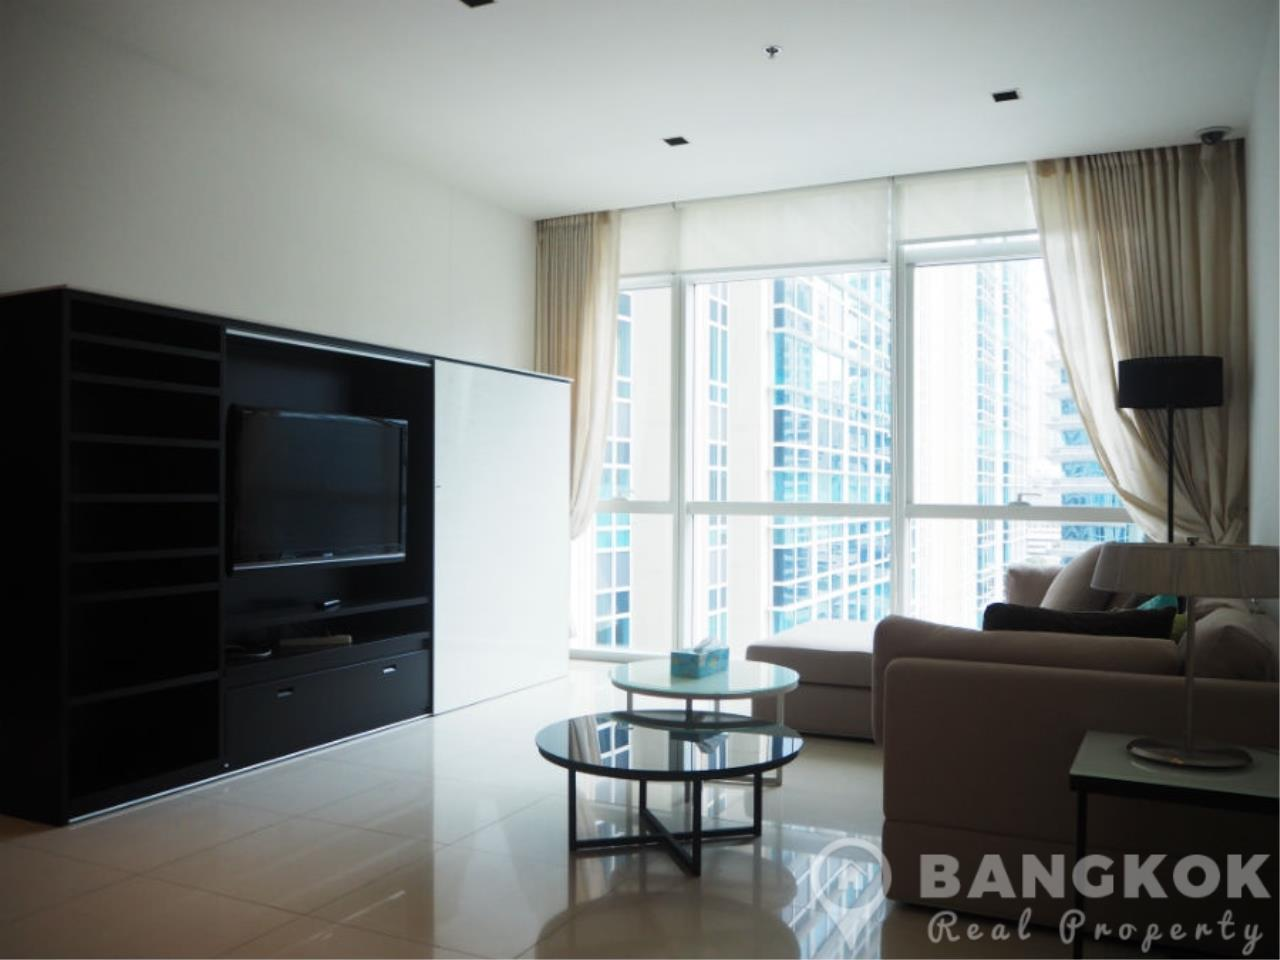 Bangkok Real Property Agency's Athenee Residence | Spacious Modern 2 Bed 2 Bath with Great City Views 4